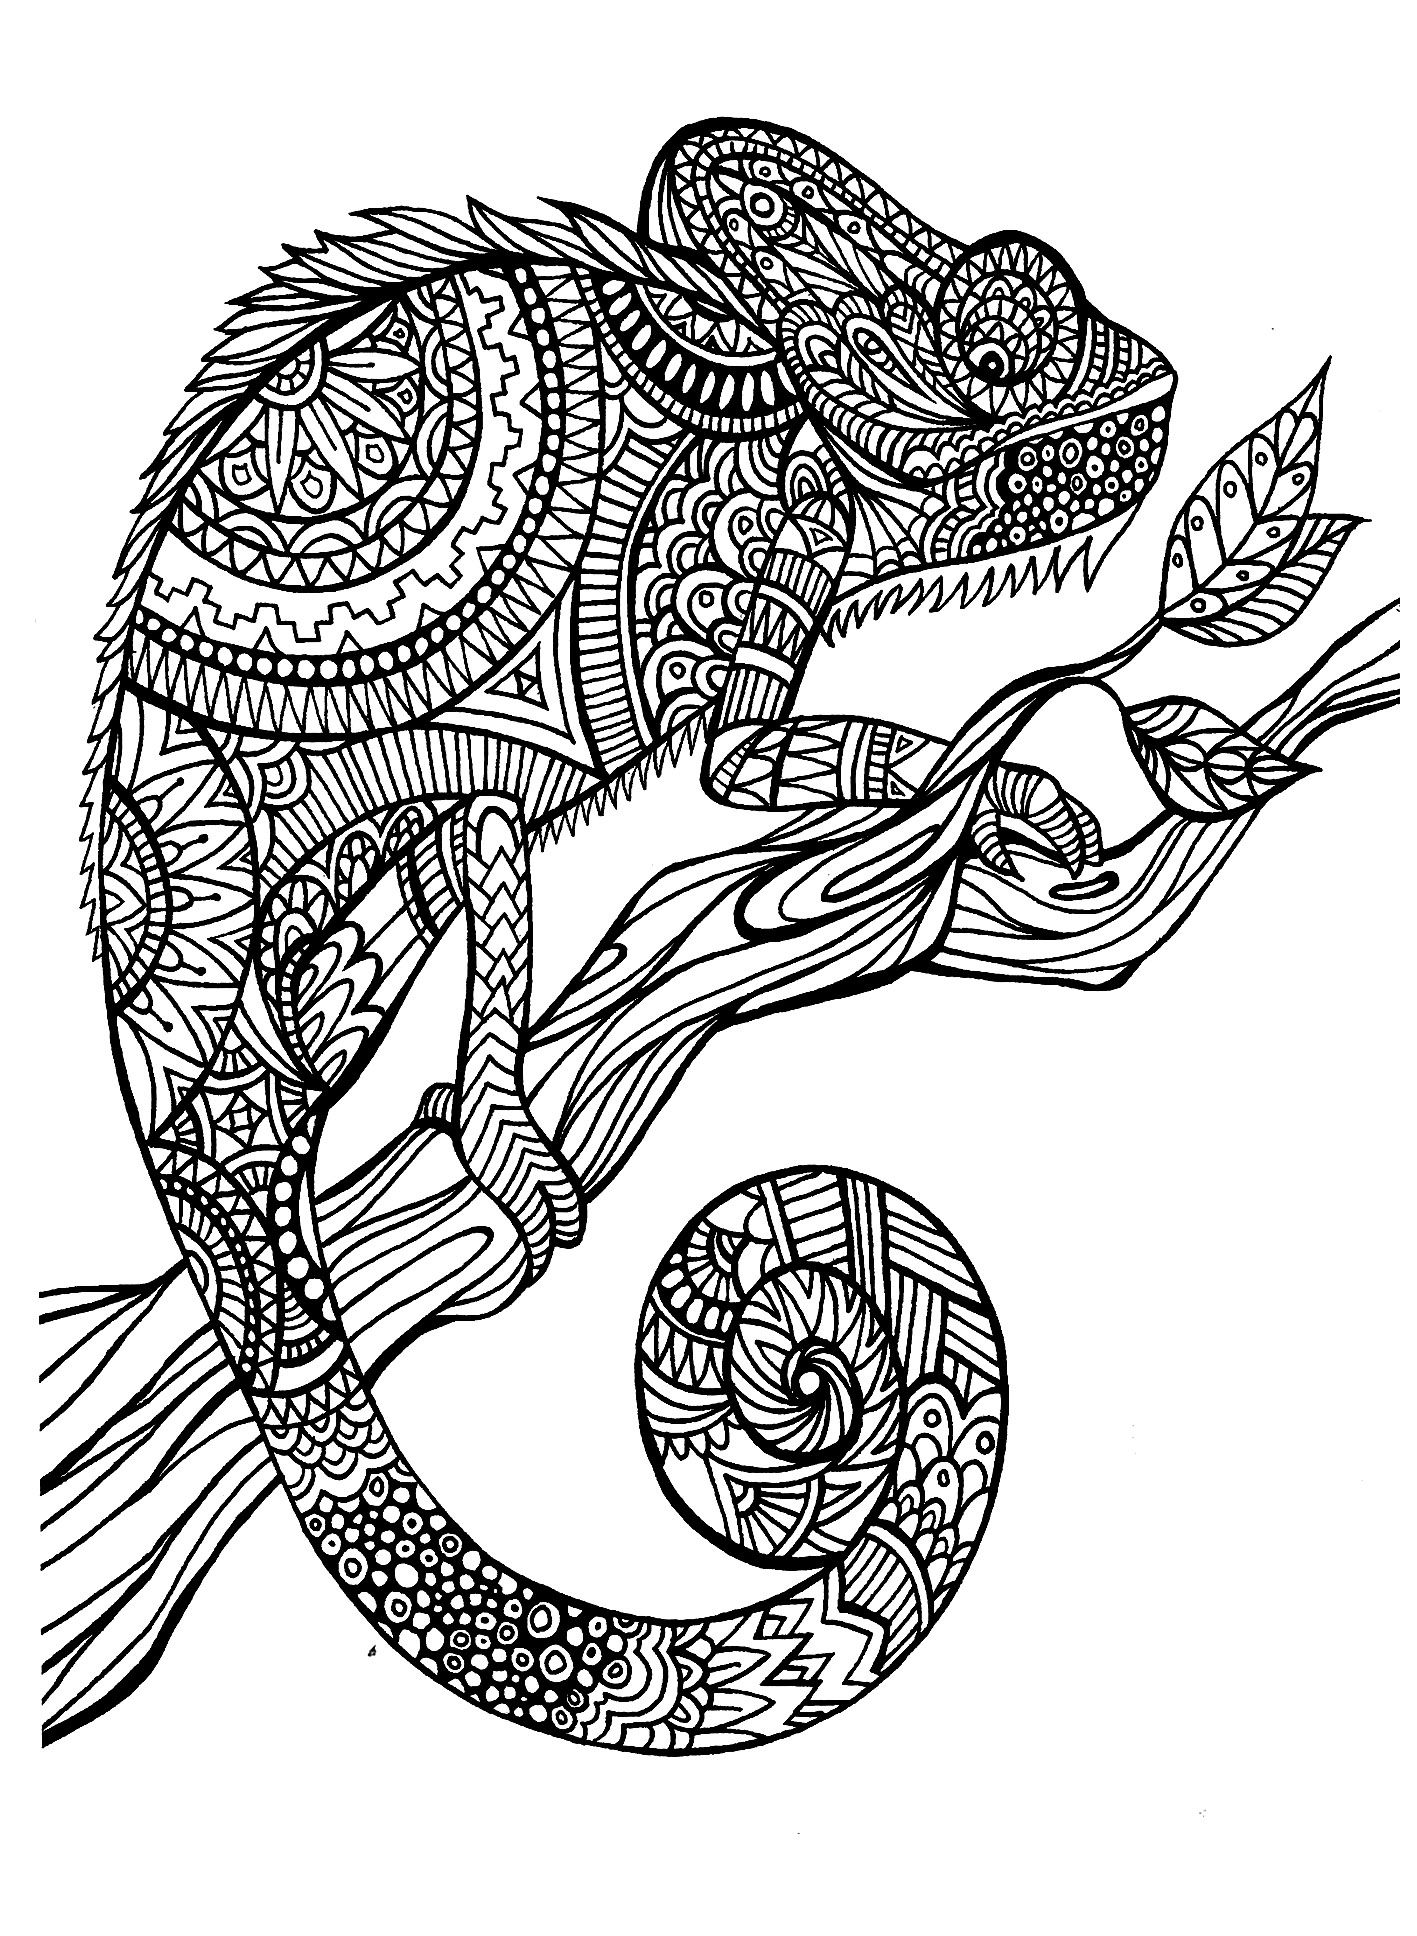 Free Coloring Page Coloring Adult Cameleon Patterns A Magnificien